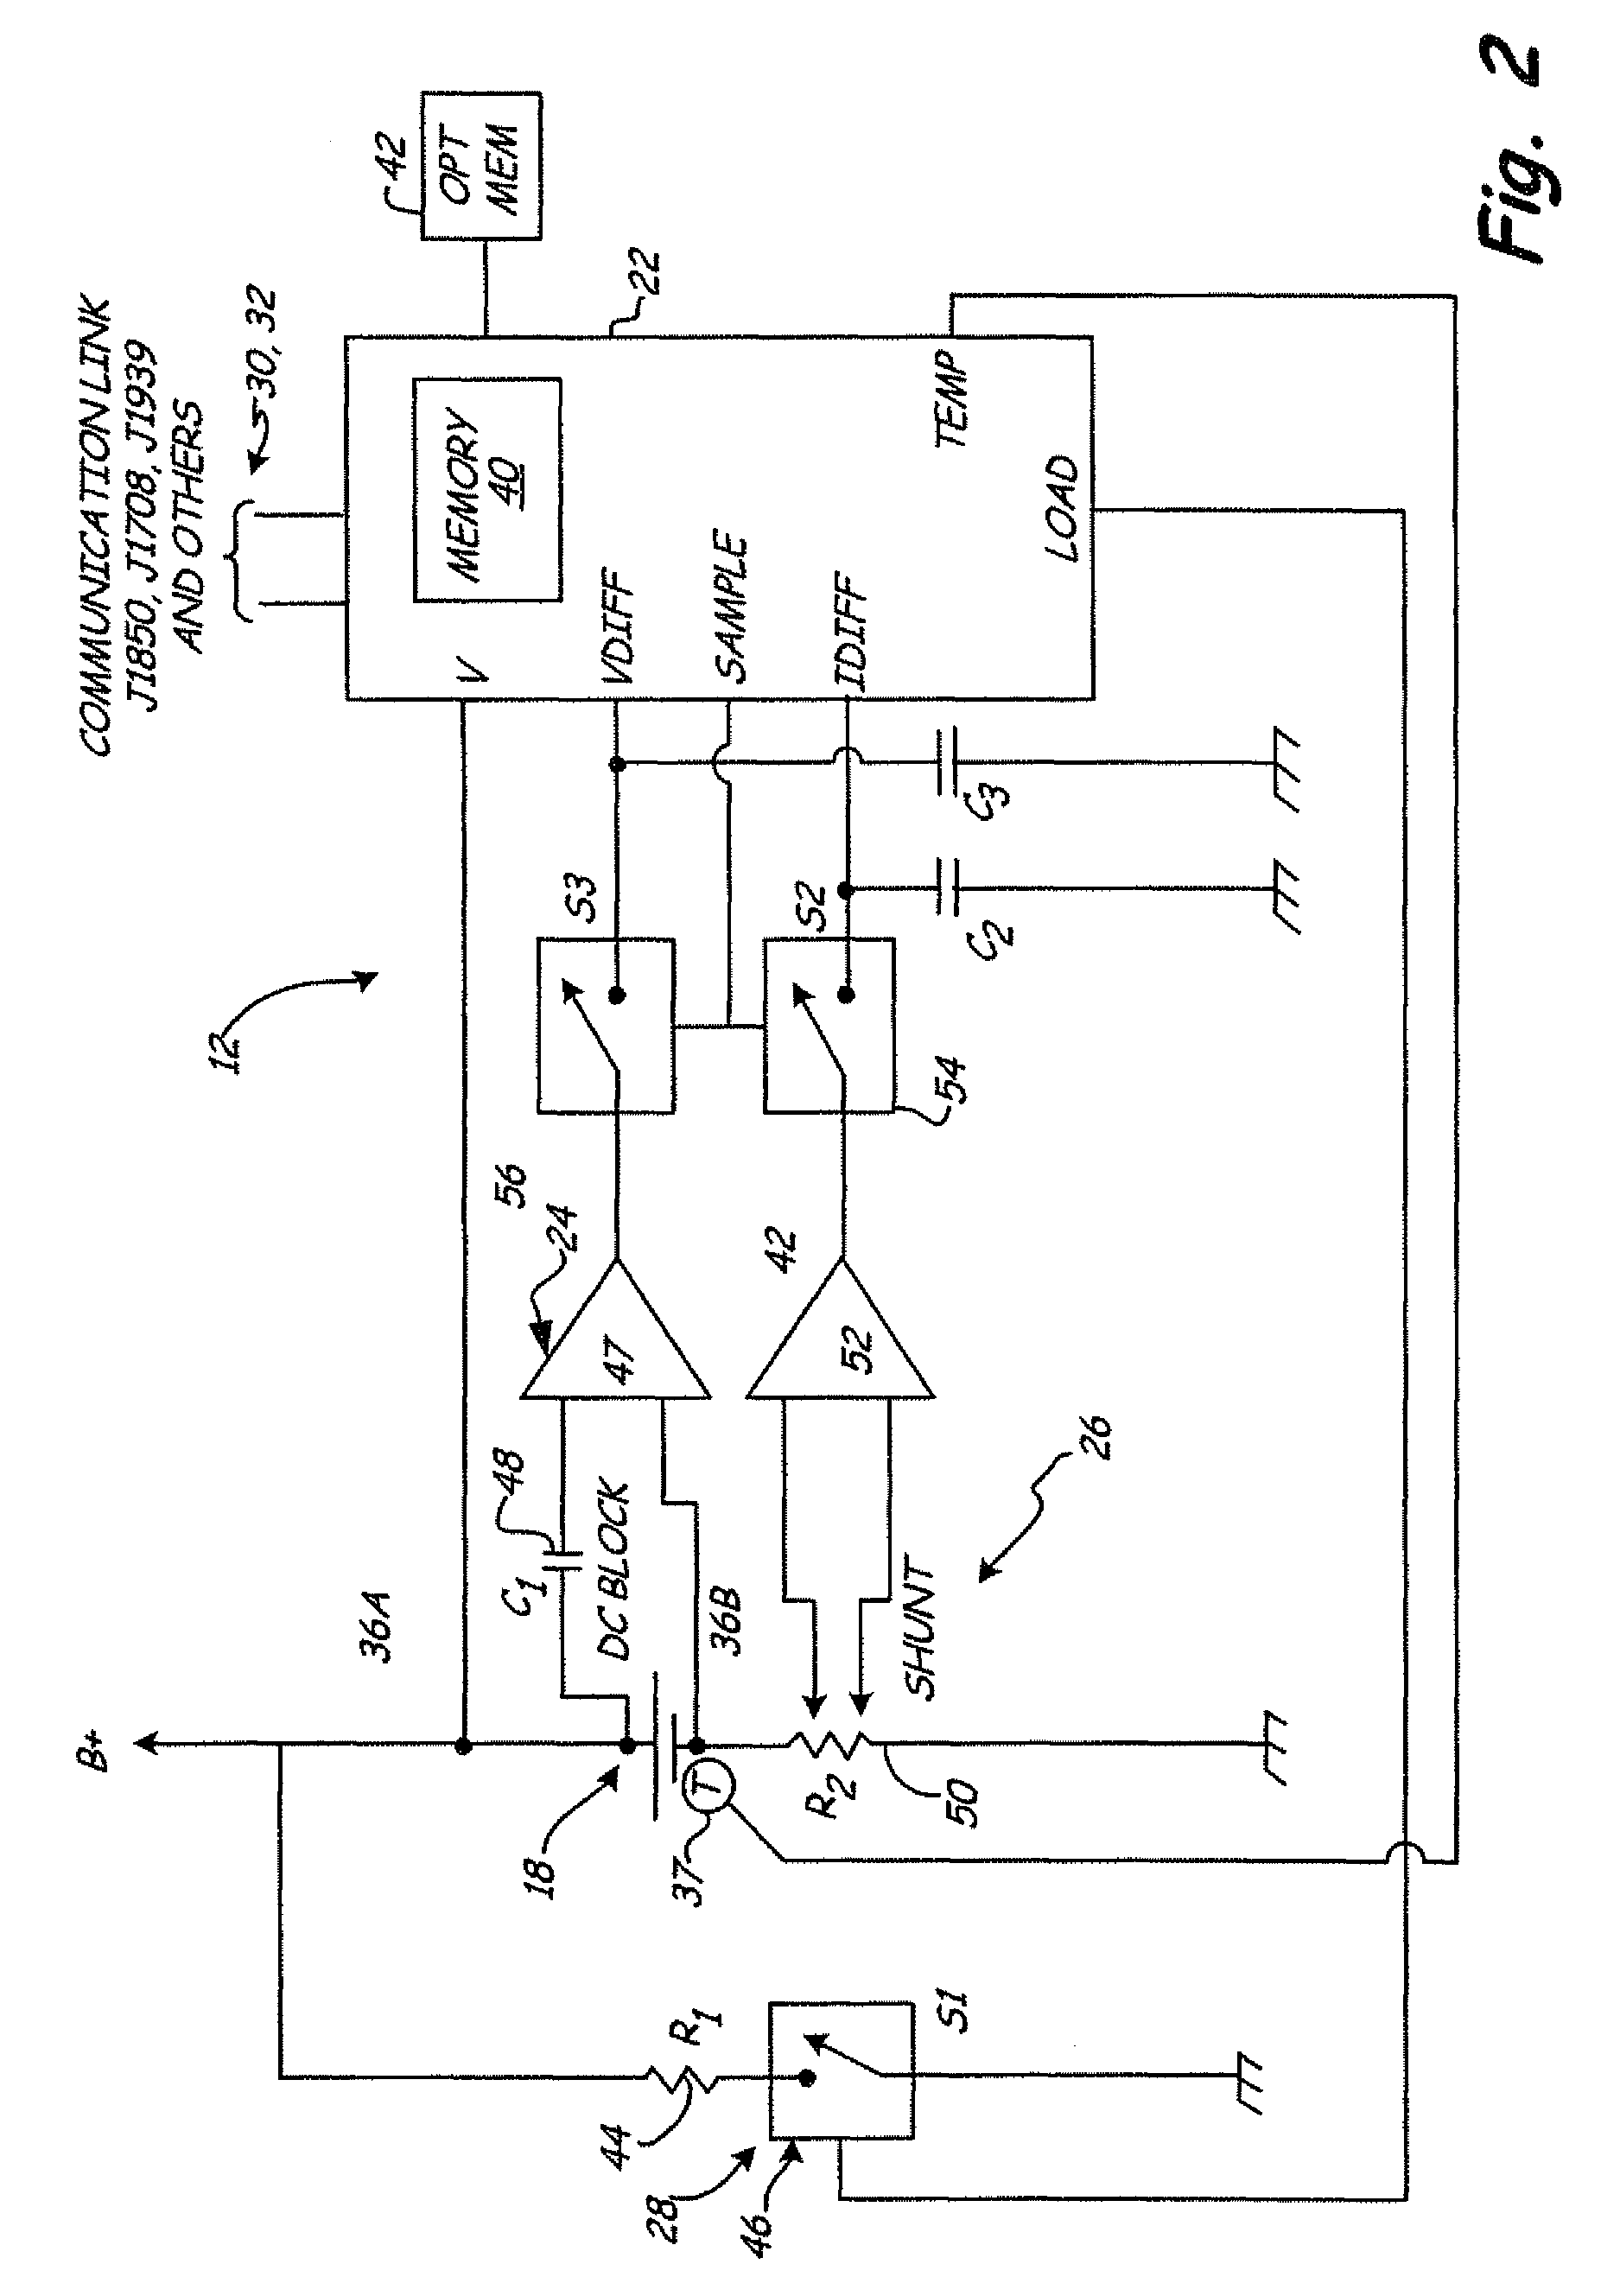 US8493022B2 - Automotive vehicle electrical system ... on